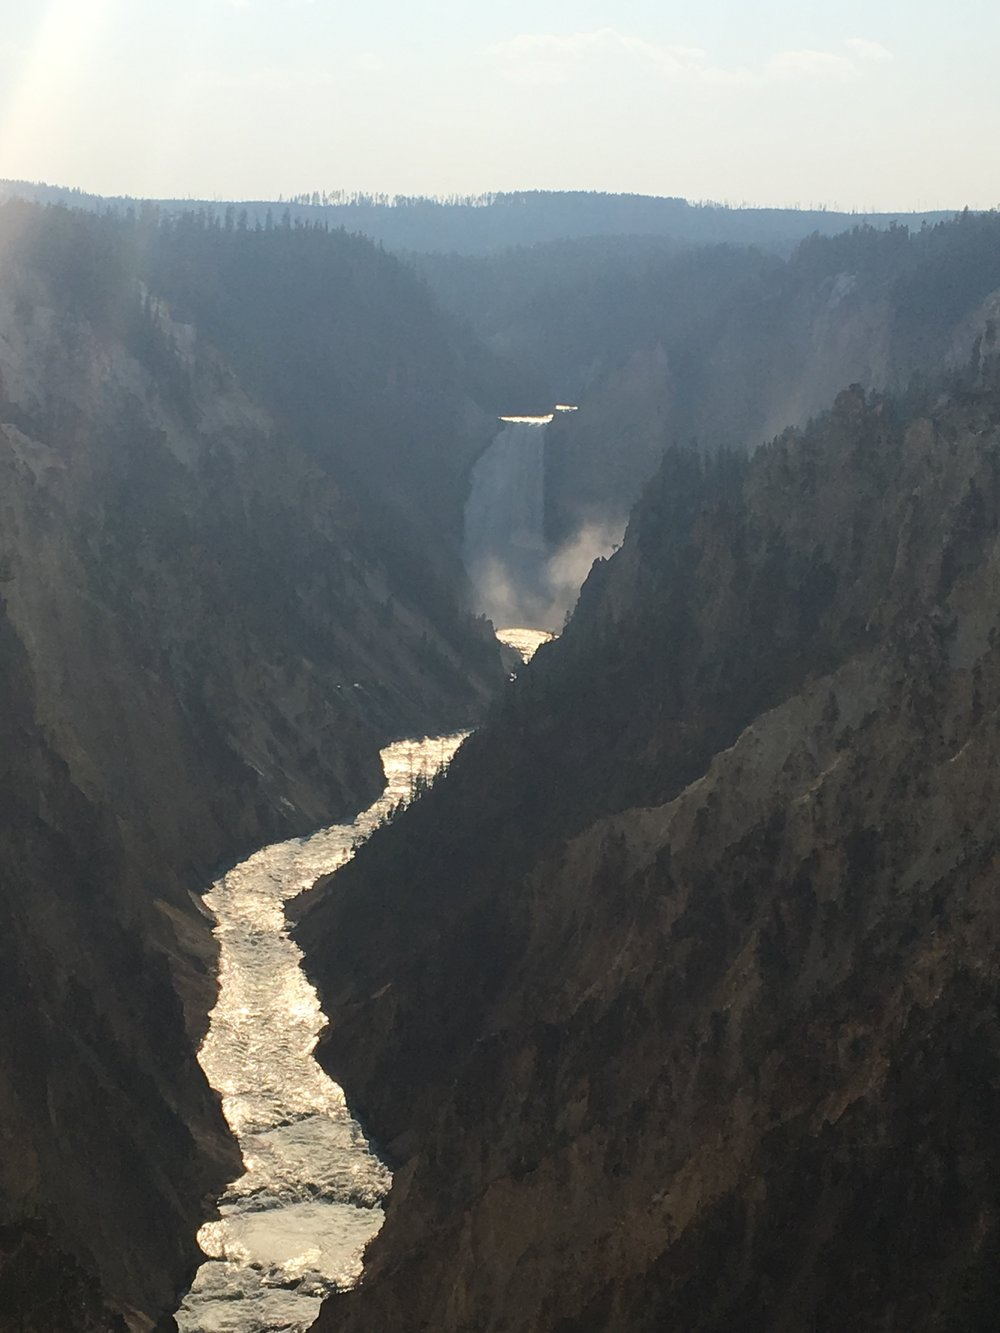 Yellowstone Falls from Artists Point. The light was pretty terrible and it was hazy out, so the photo does NOT do this one justice. It's my favorite part of the park by far.